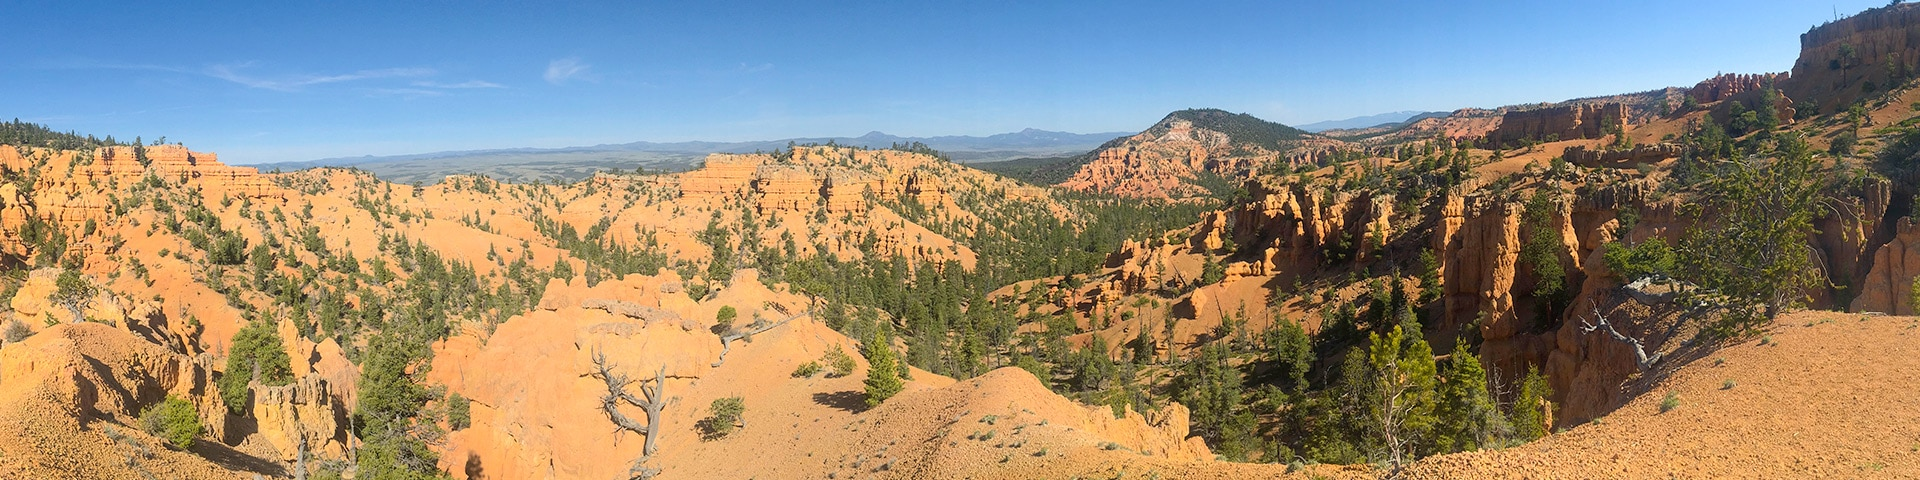 Golden Wall hike in Bryce Canyon National Park, Utah